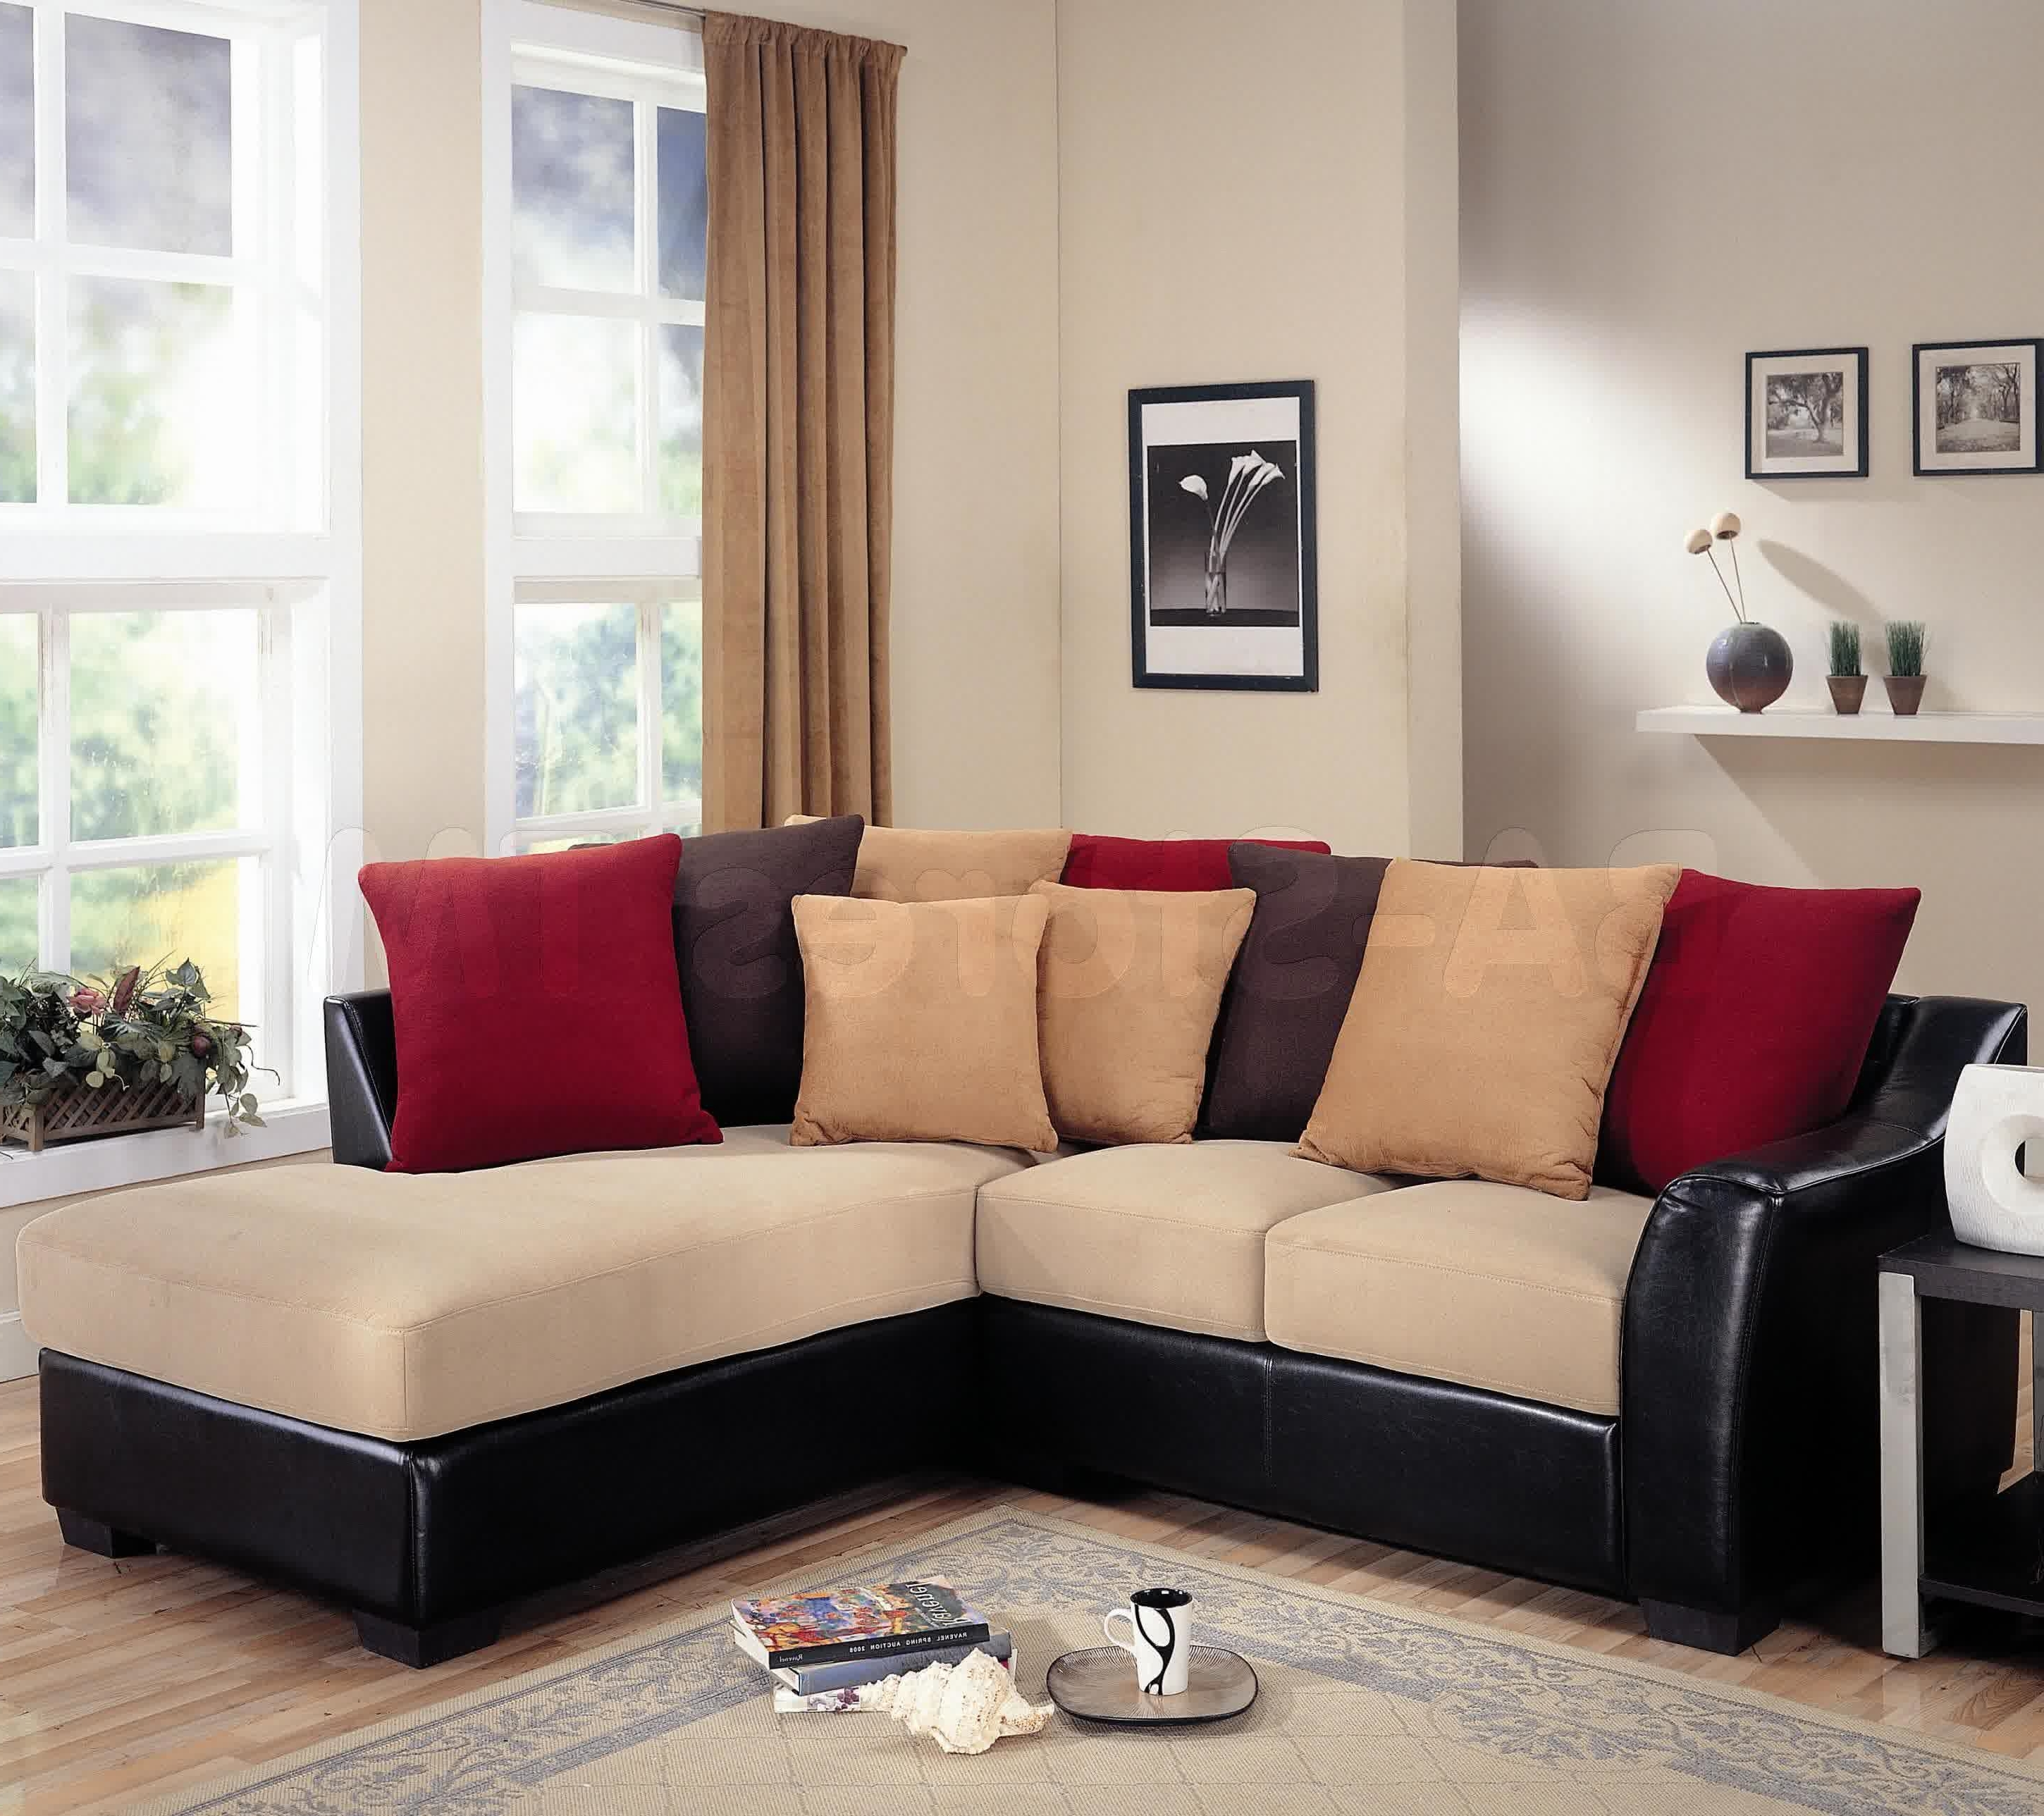 Clearance Sectional Sofas In 2018 Home Designs : Bobs Living Room Sets Cheap Sectional Sofas Under (View 10 of 15)